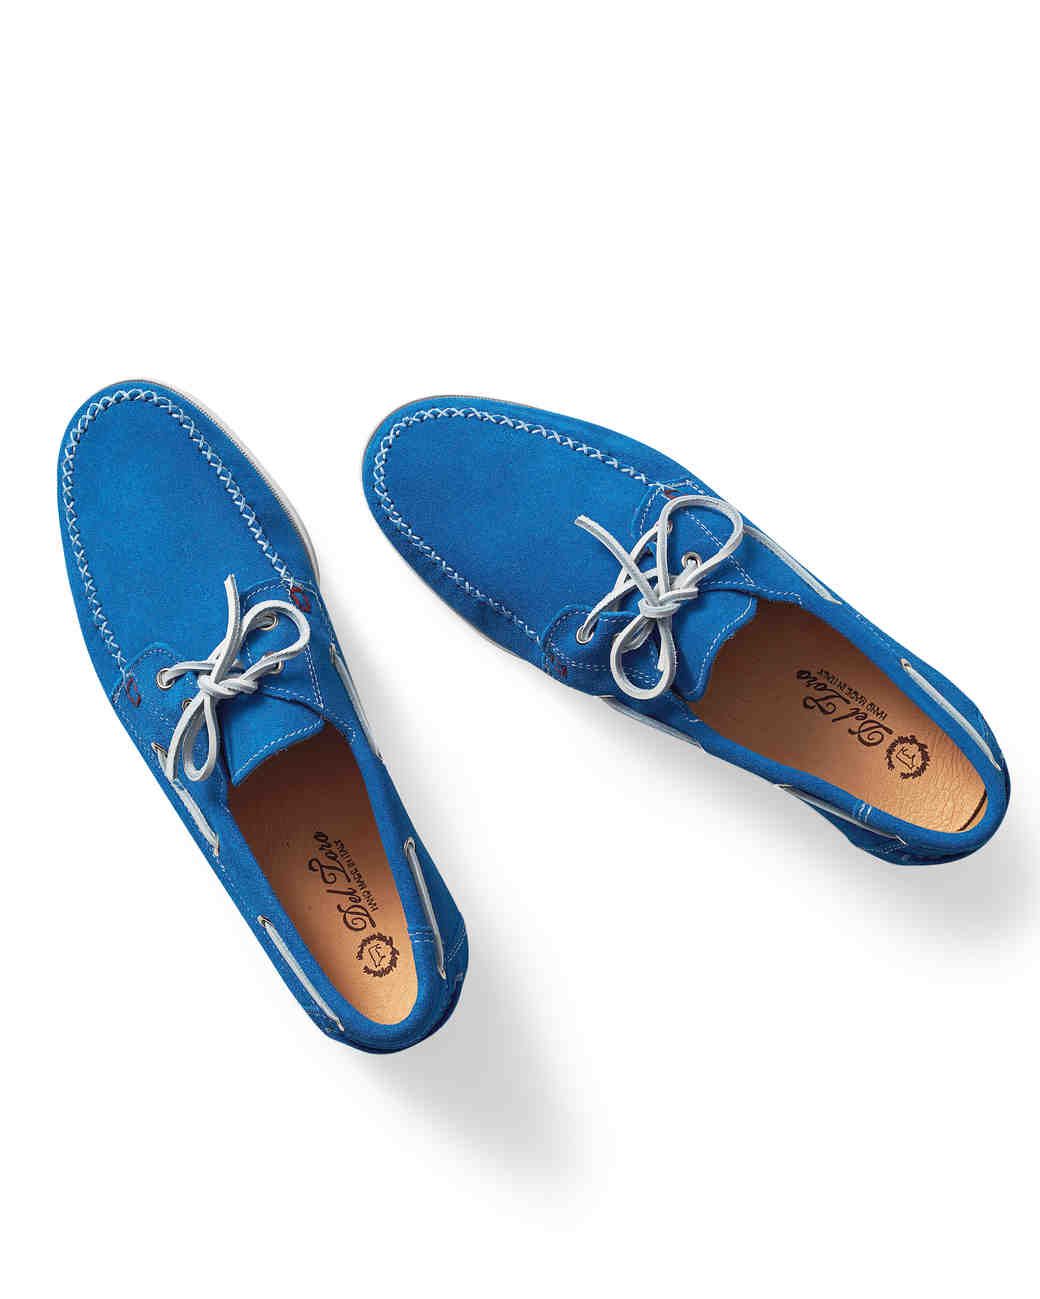 blue-shoes-019-d112138.jpg